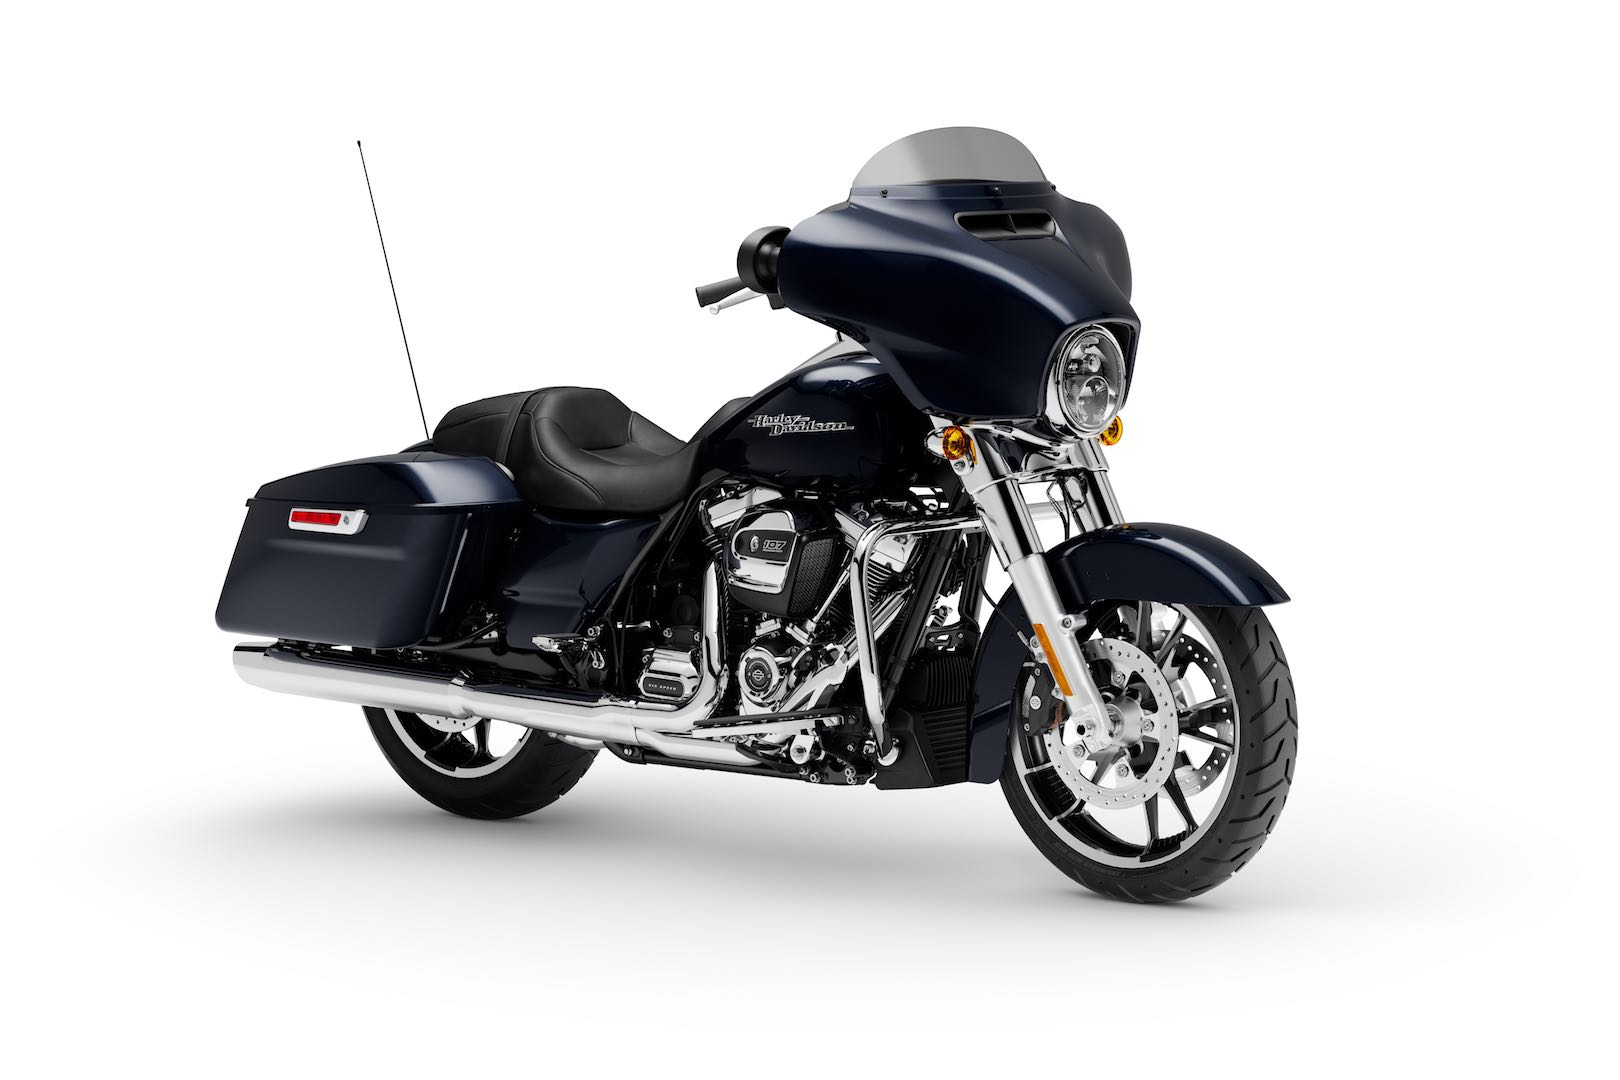 2020 Harley Street Glide for sale